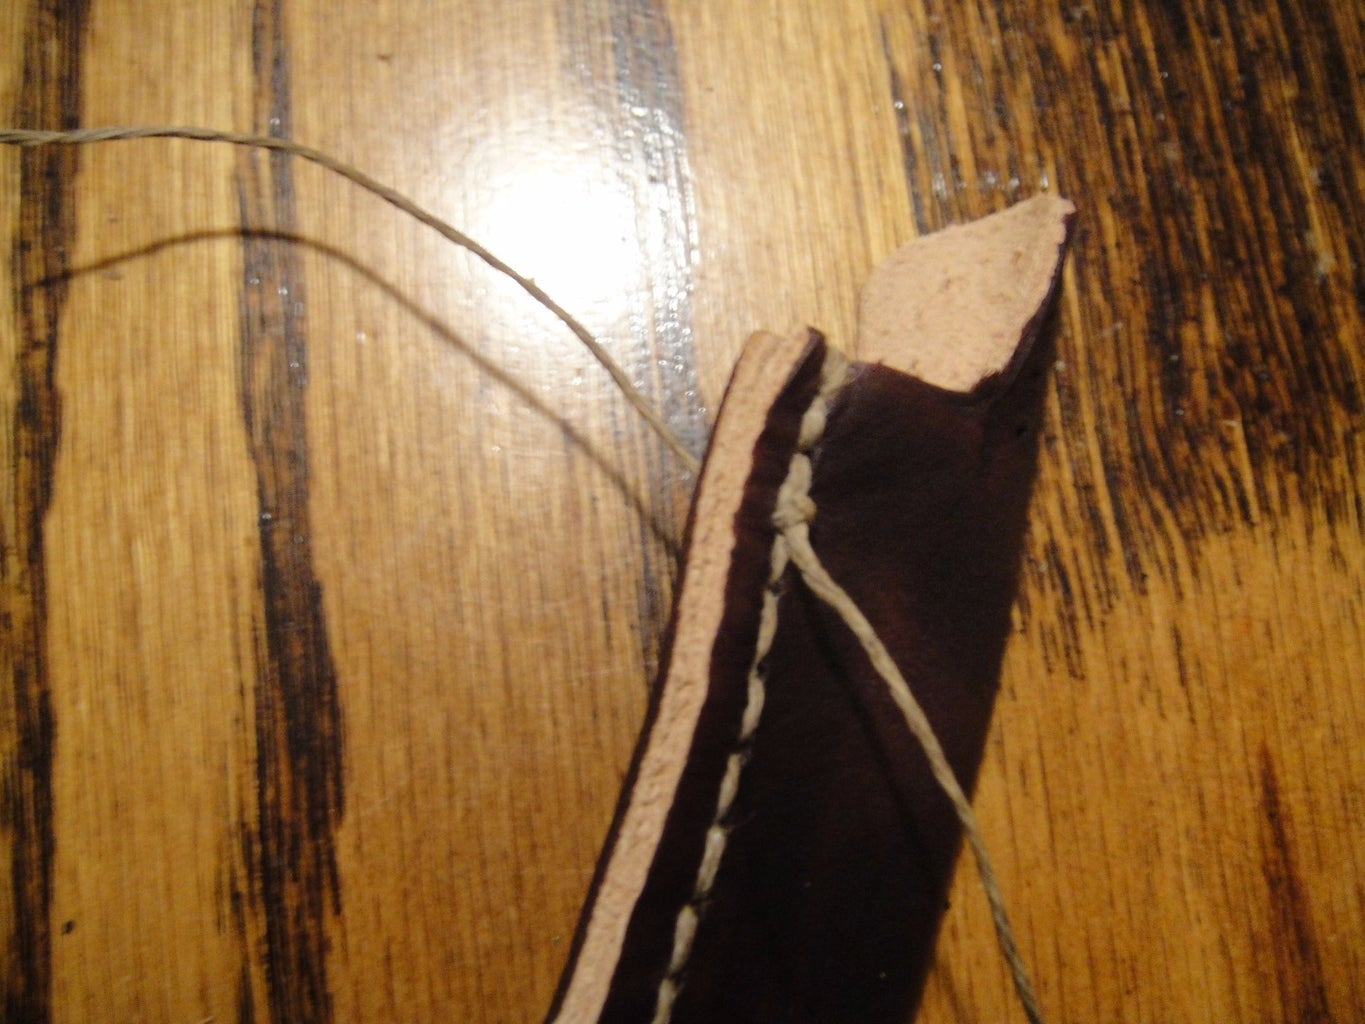 Sewing With the Saddle Stitch